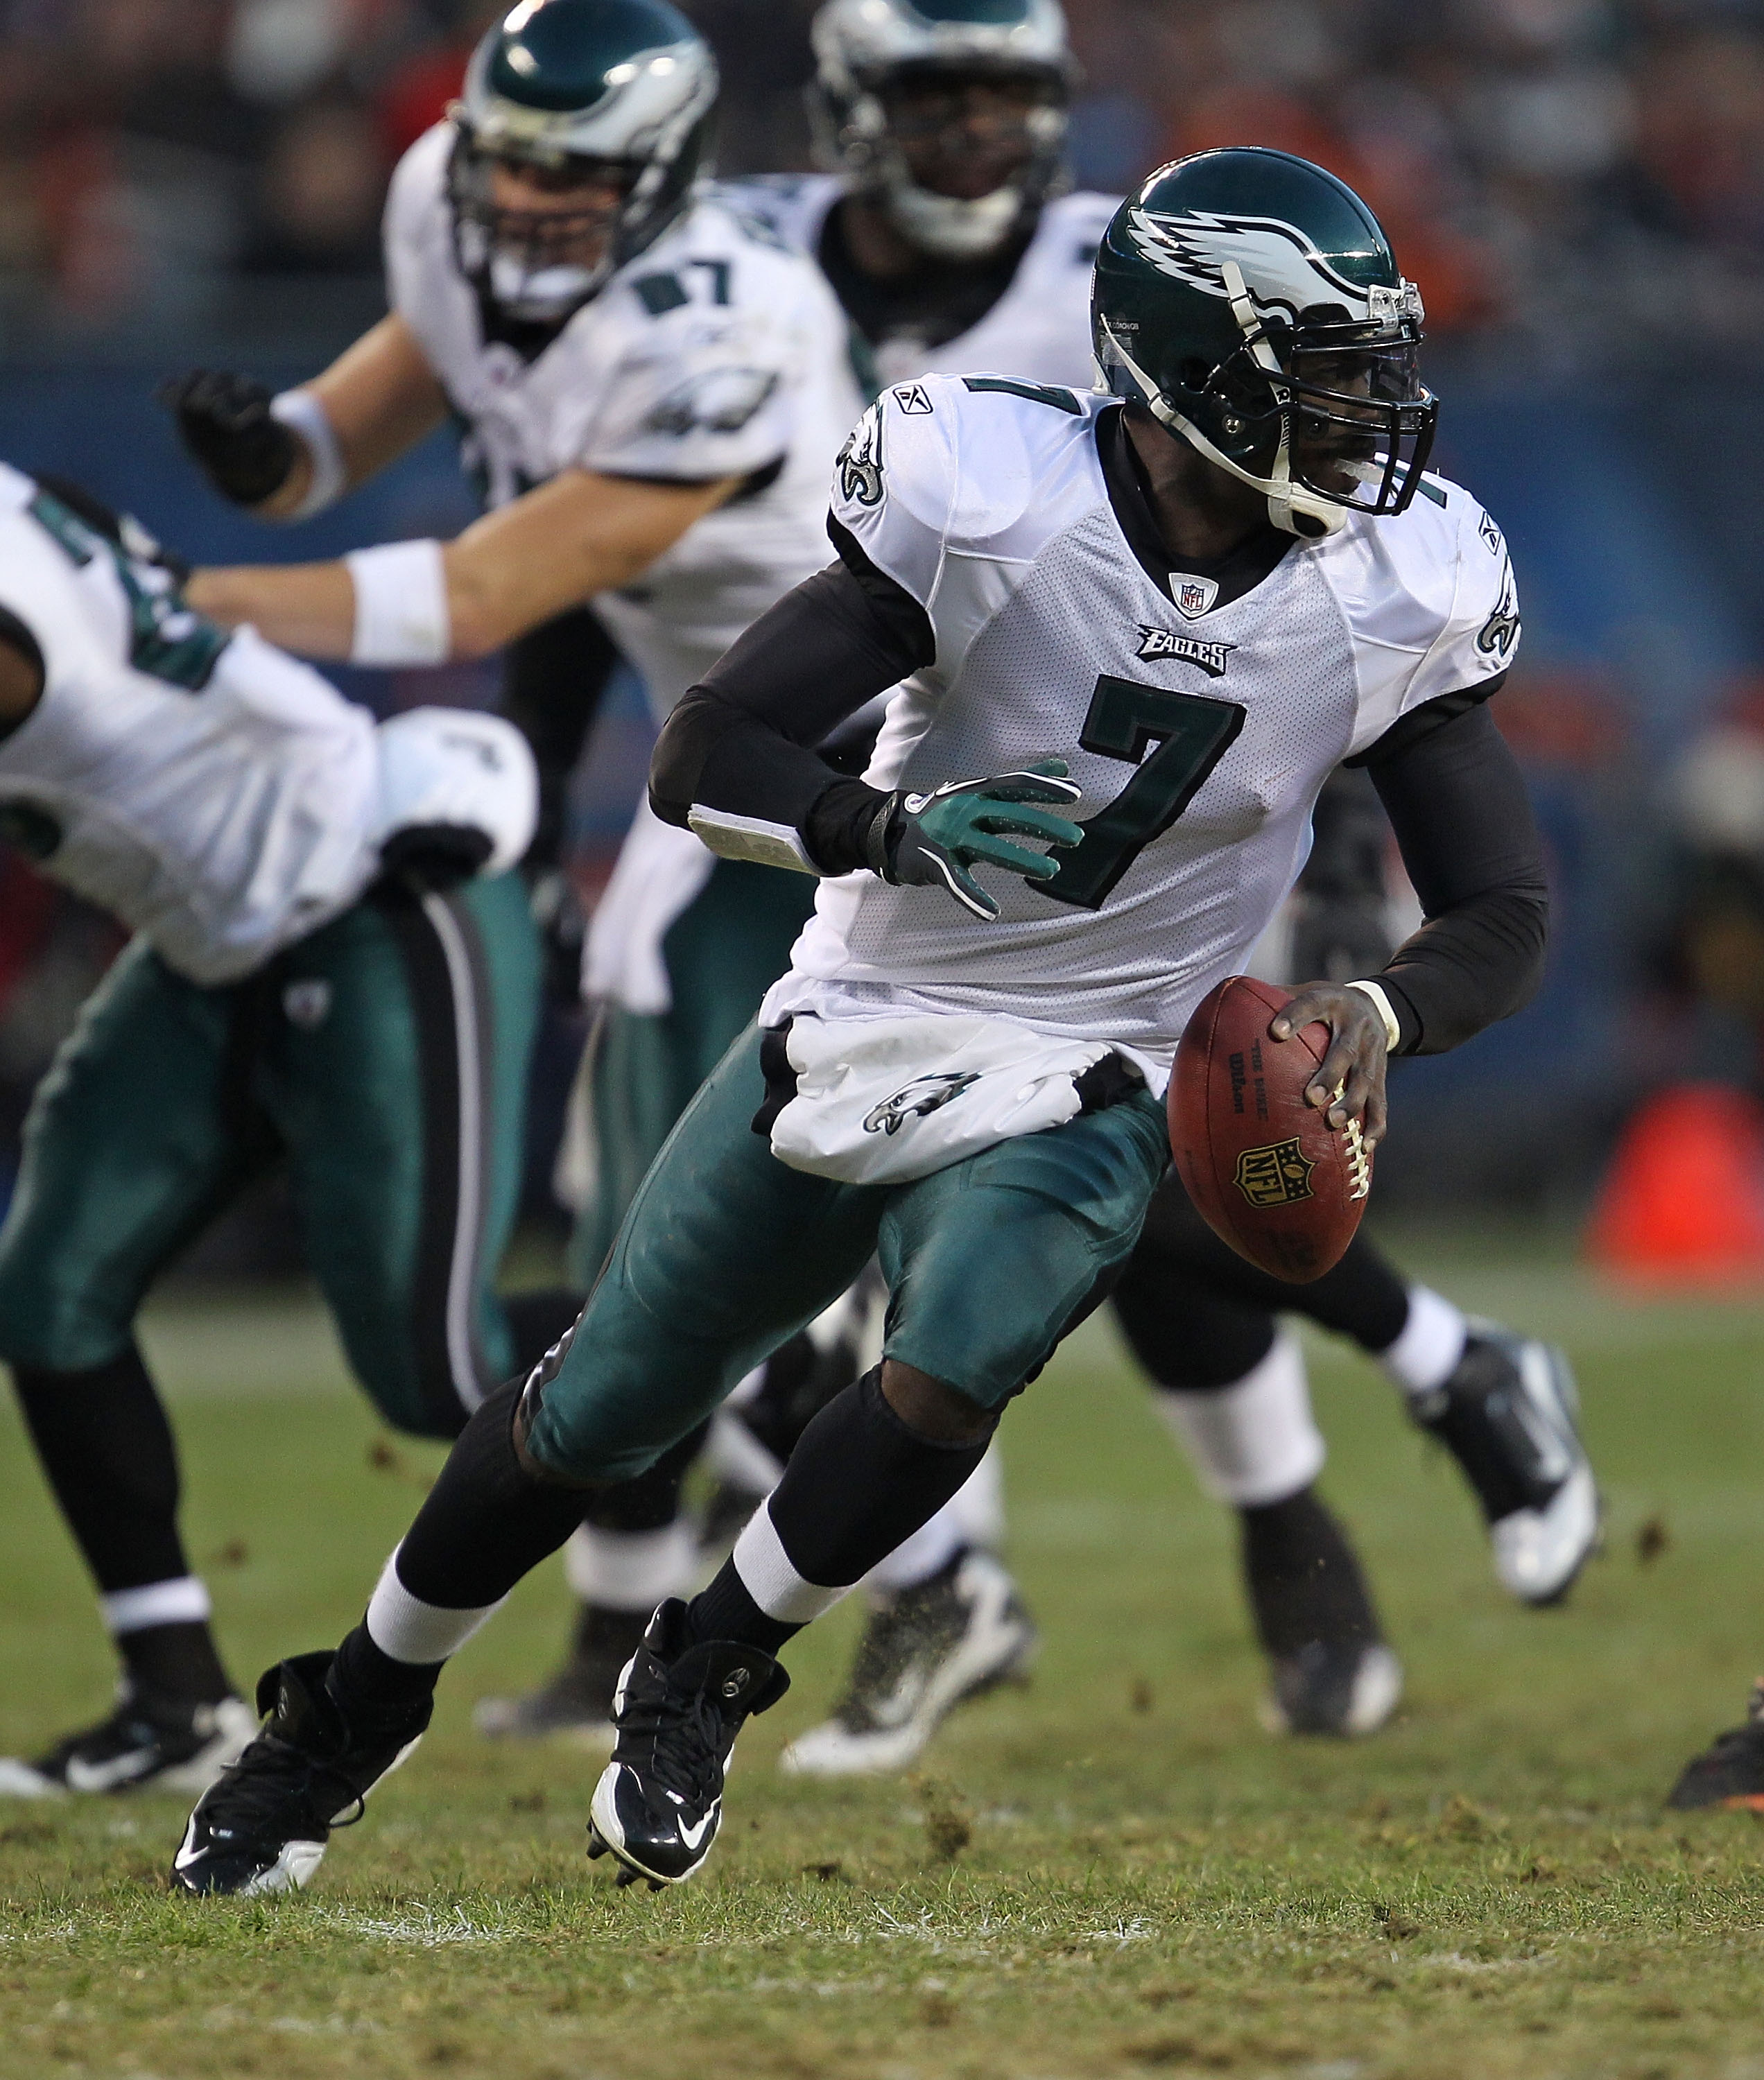 CHICAGO - NOVEMBER 28: Michael Vick #7 of the Philadelphia Eagles runs as he looks for a receiver against the Chicago Bears at Soldier Field on November 28, 2010 in Chicago, Illinois. The Bears defeated the Eagles 31-26. (Photo by Jonathan Daniel/Getty Im